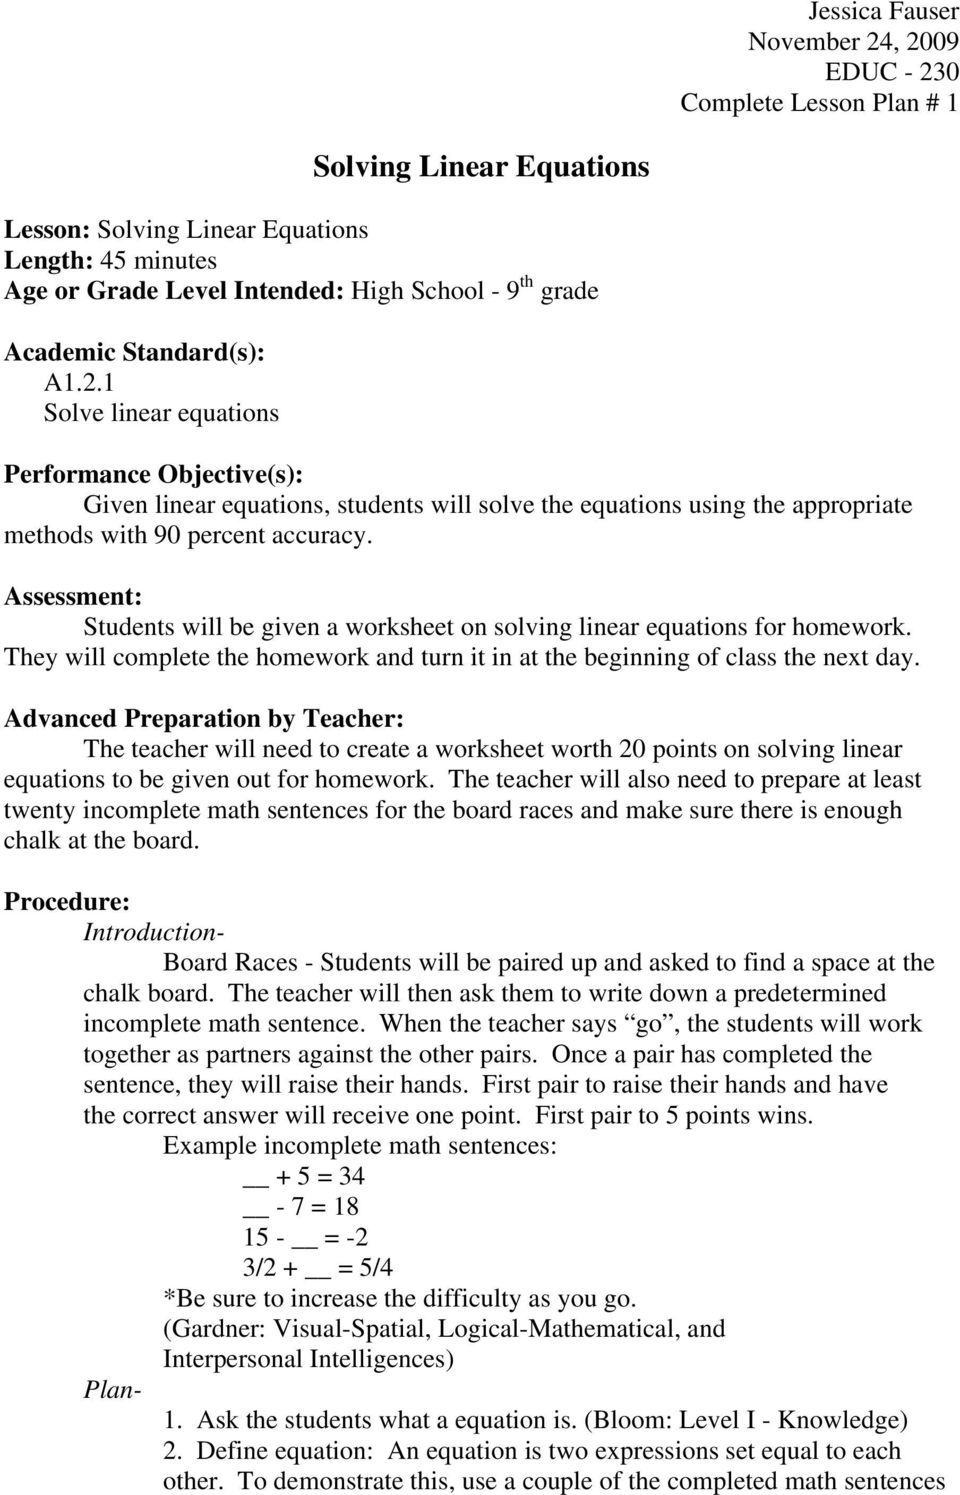 Assessment: Students will be given a worksheet on solving linear equations for homework. They will complete the homework and turn it in at the beginning of class the next day.